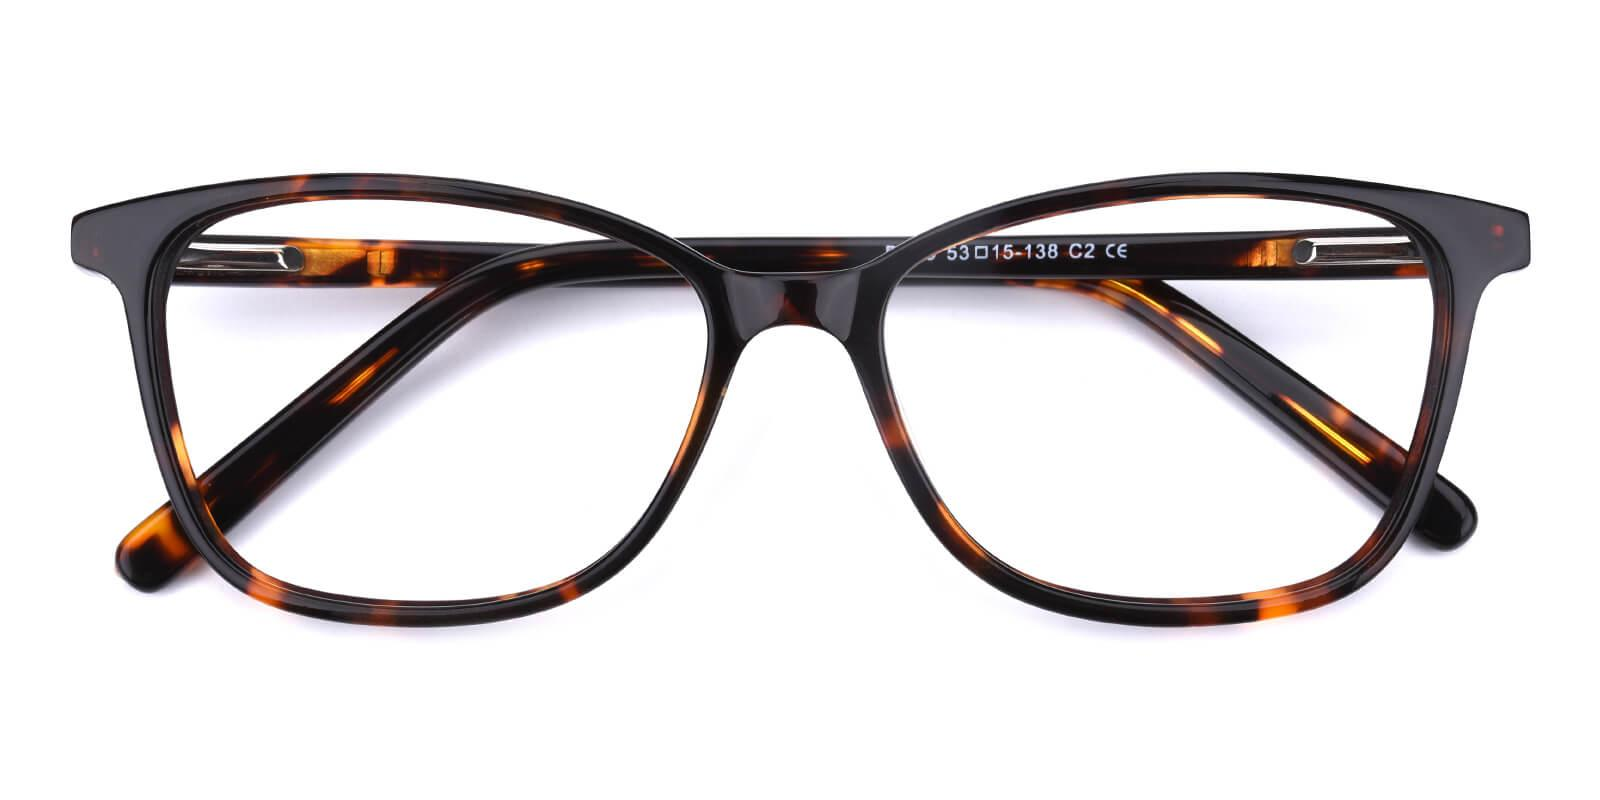 Believe-Tortoise-Square / Cat-Acetate-Eyeglasses-detail